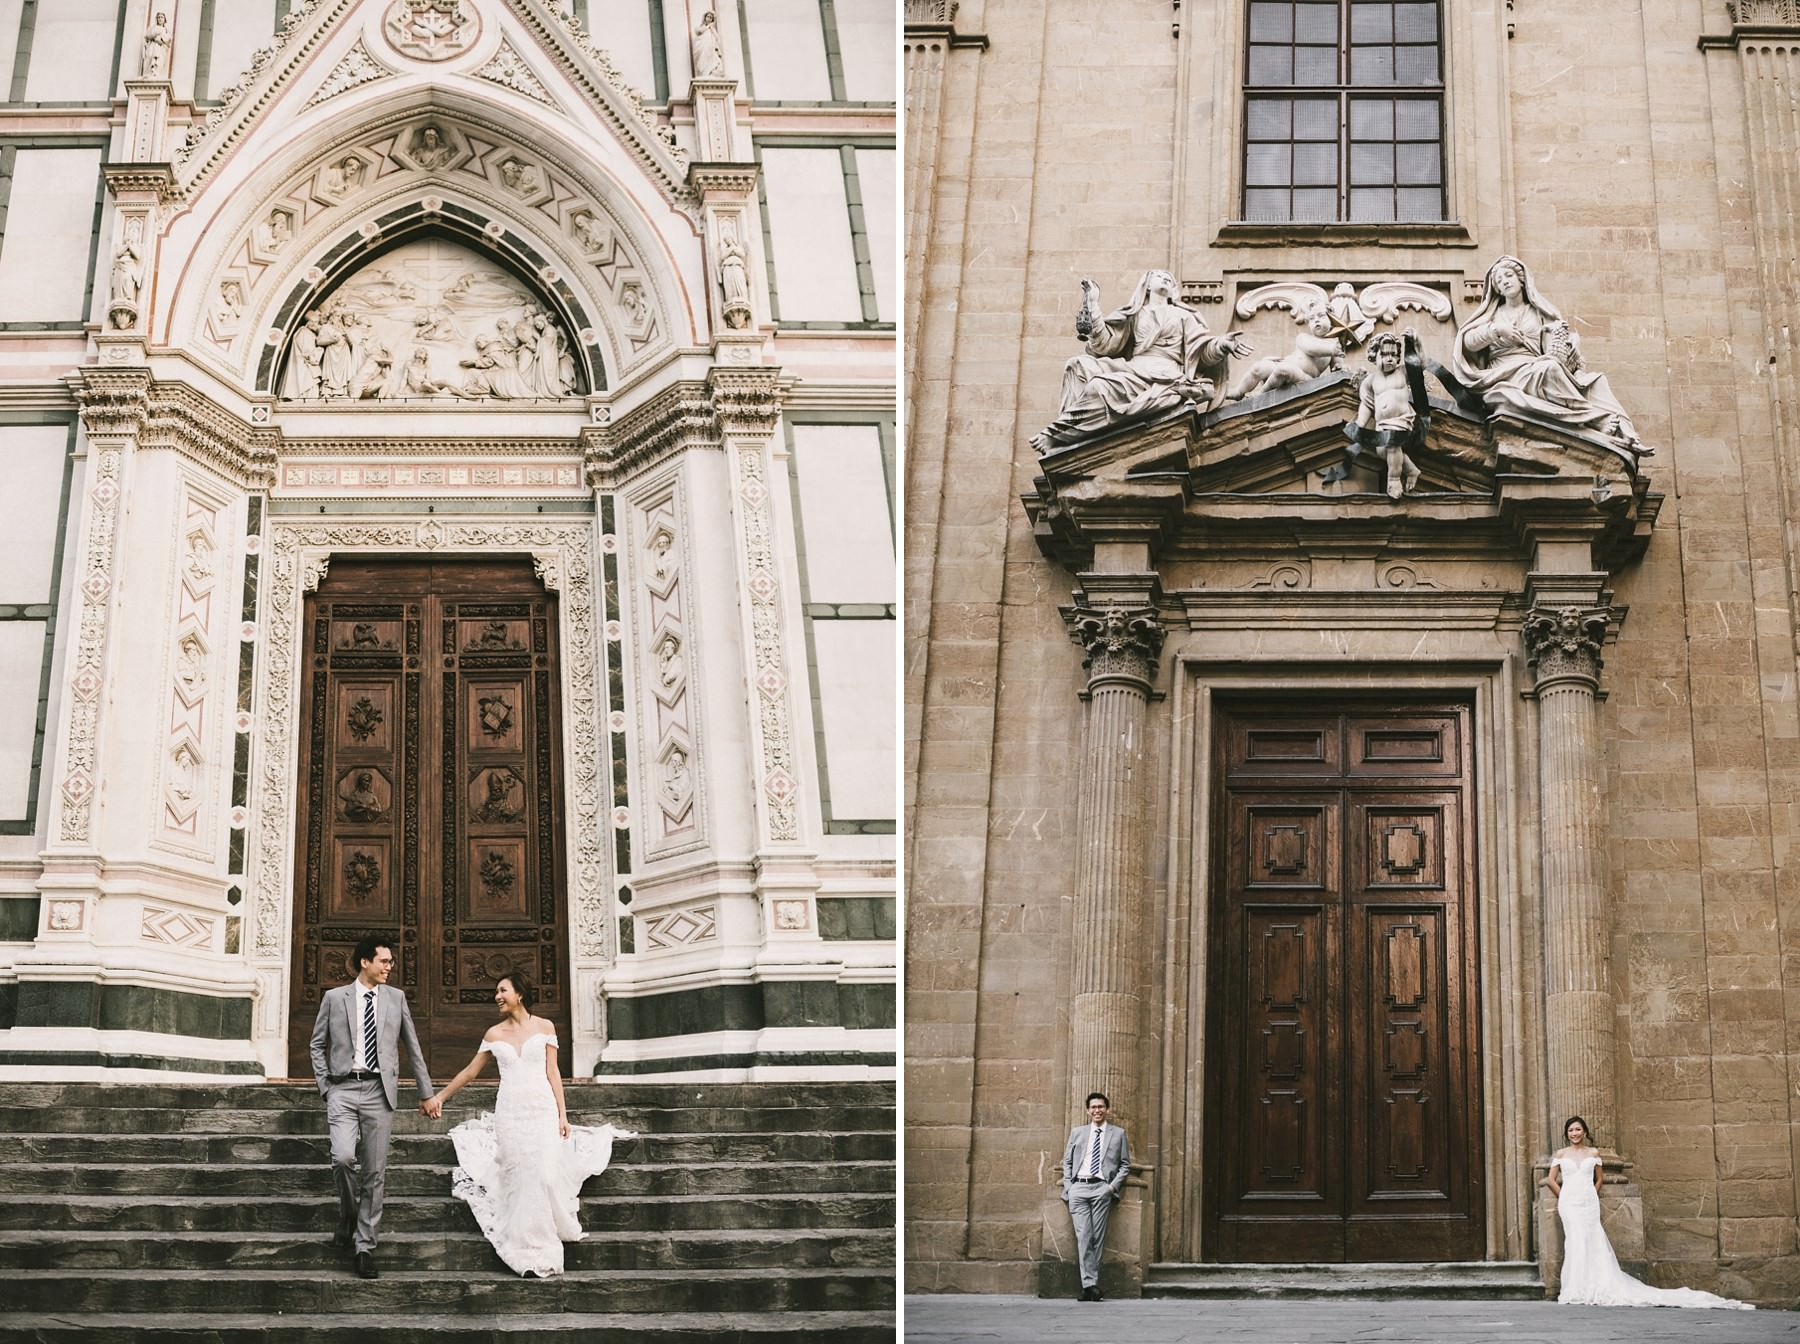 Honeymoon Florence couple photo shoot